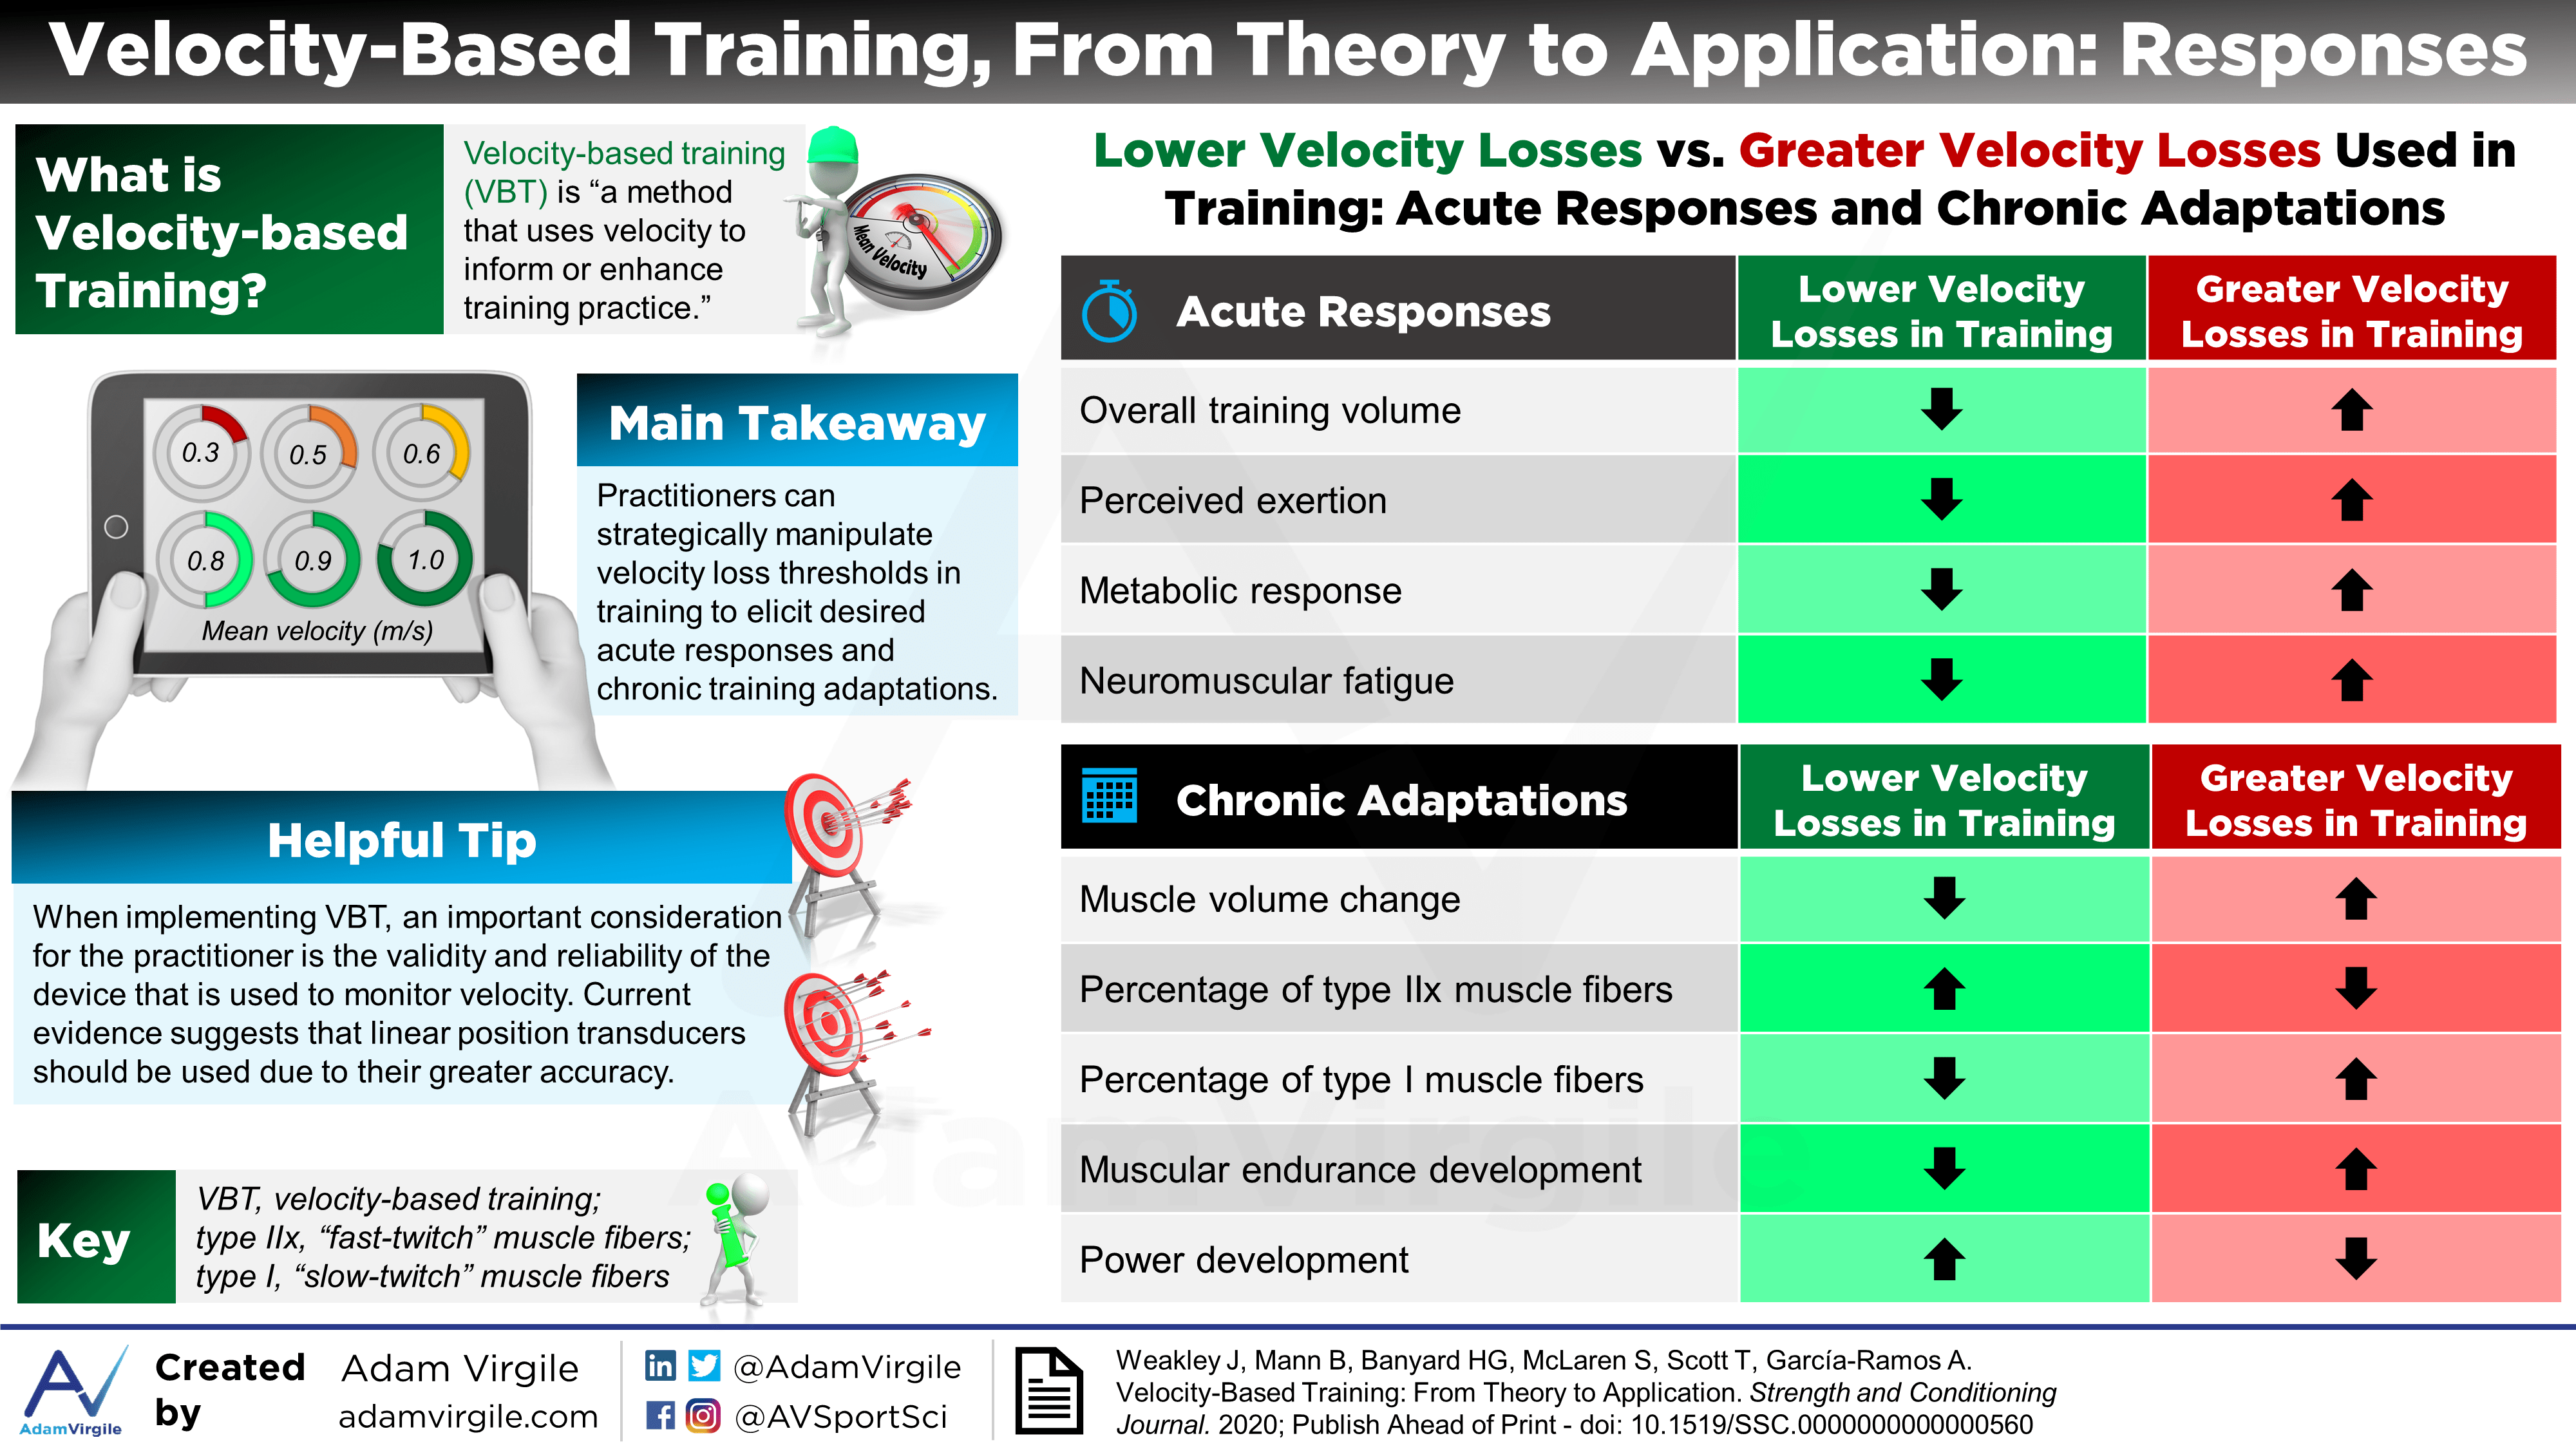 Velocity-Based Training, From Theory to Application: Responses